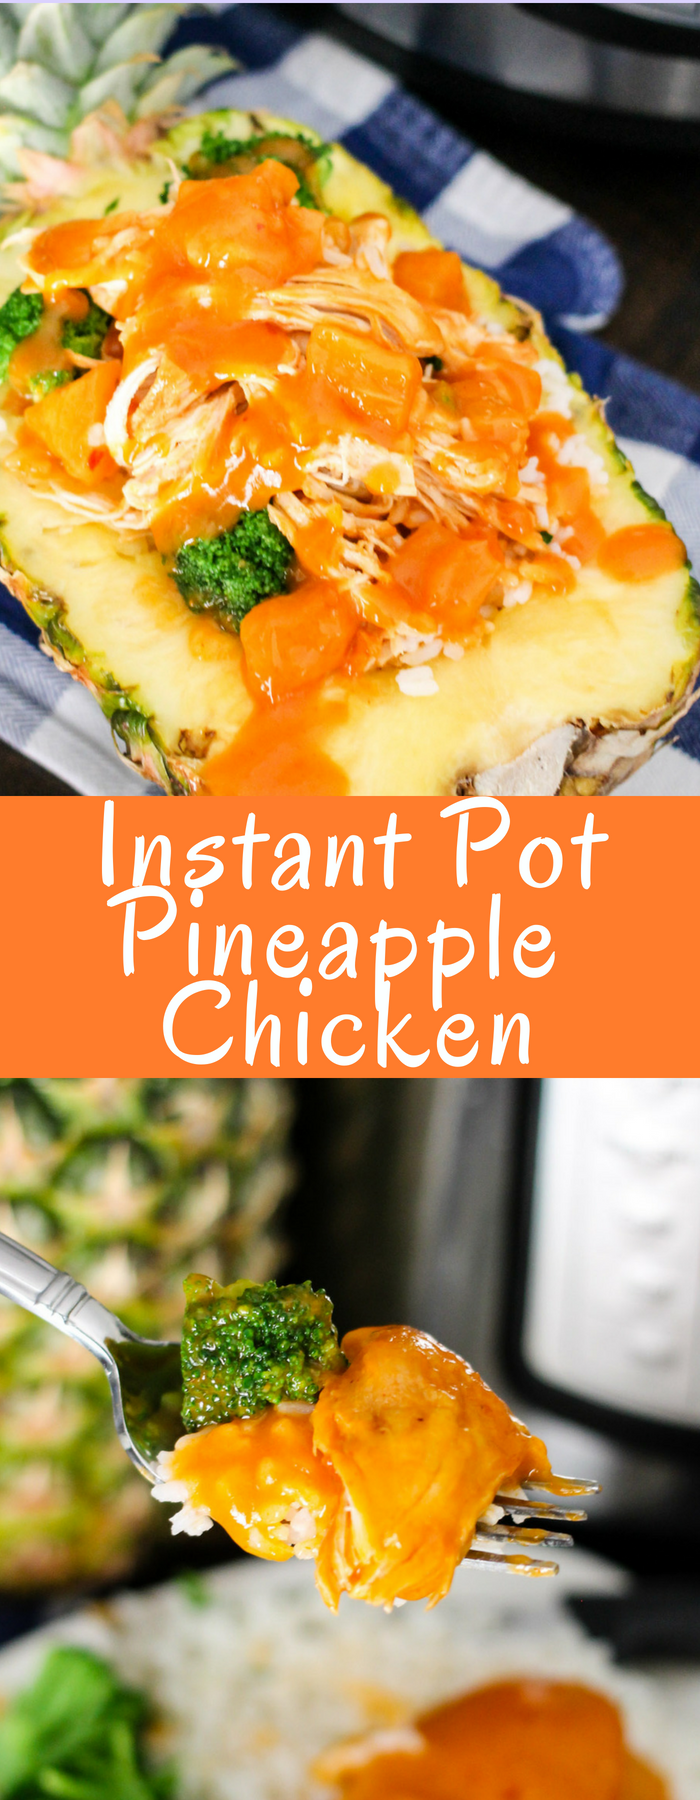 Instant Pot Pineapple Chicken is an easy and delicious family friendly meal that is done in minutes and only uses one pot!